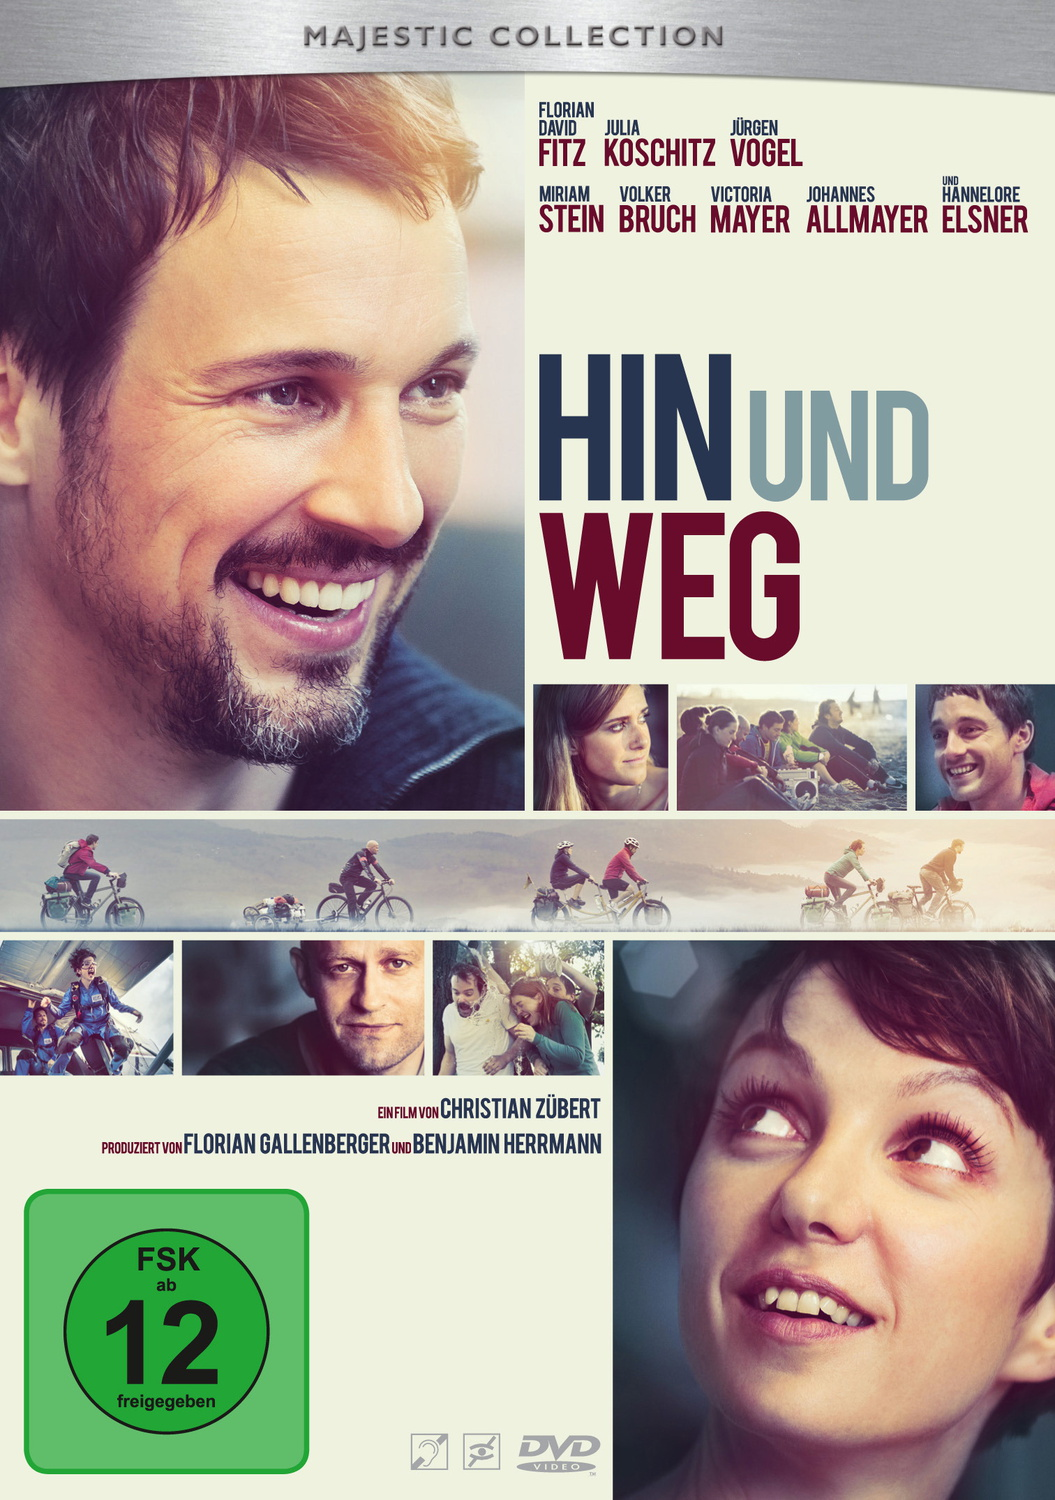 Hin und weg [Master Collection]